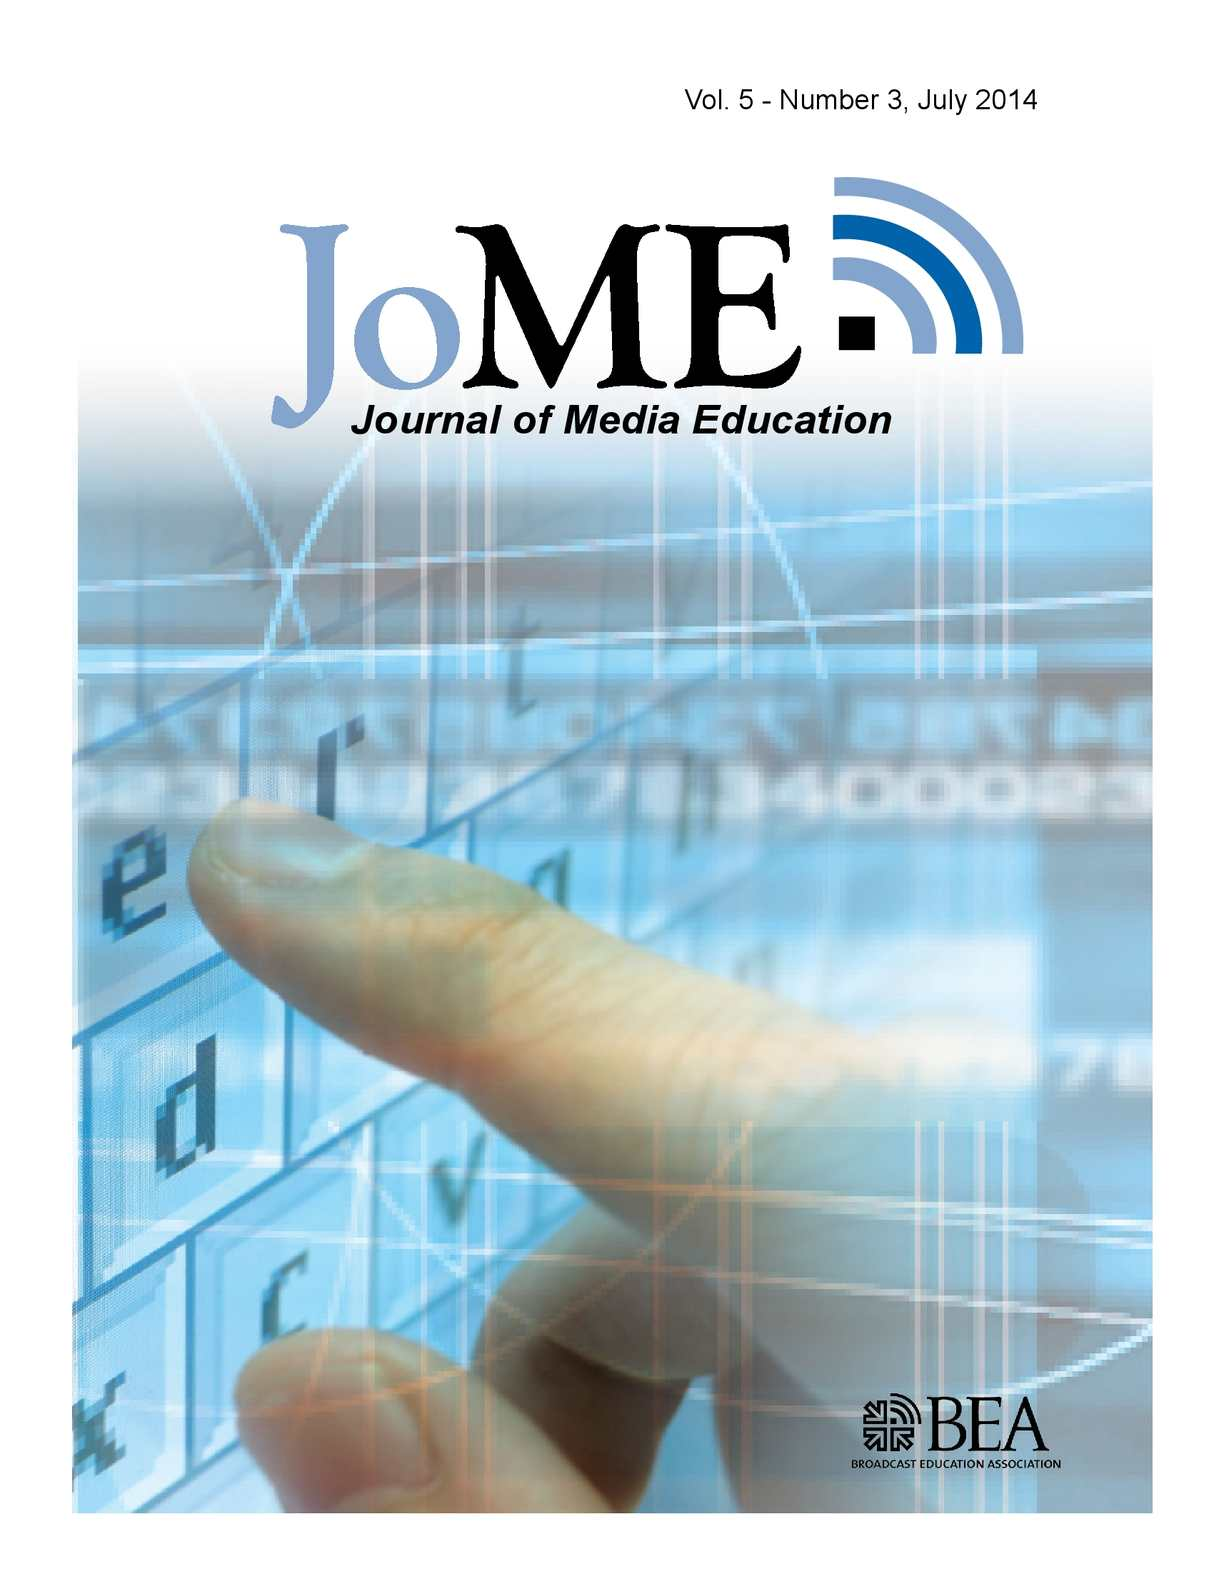 Calaméo - Journal of Media Education | July 2014